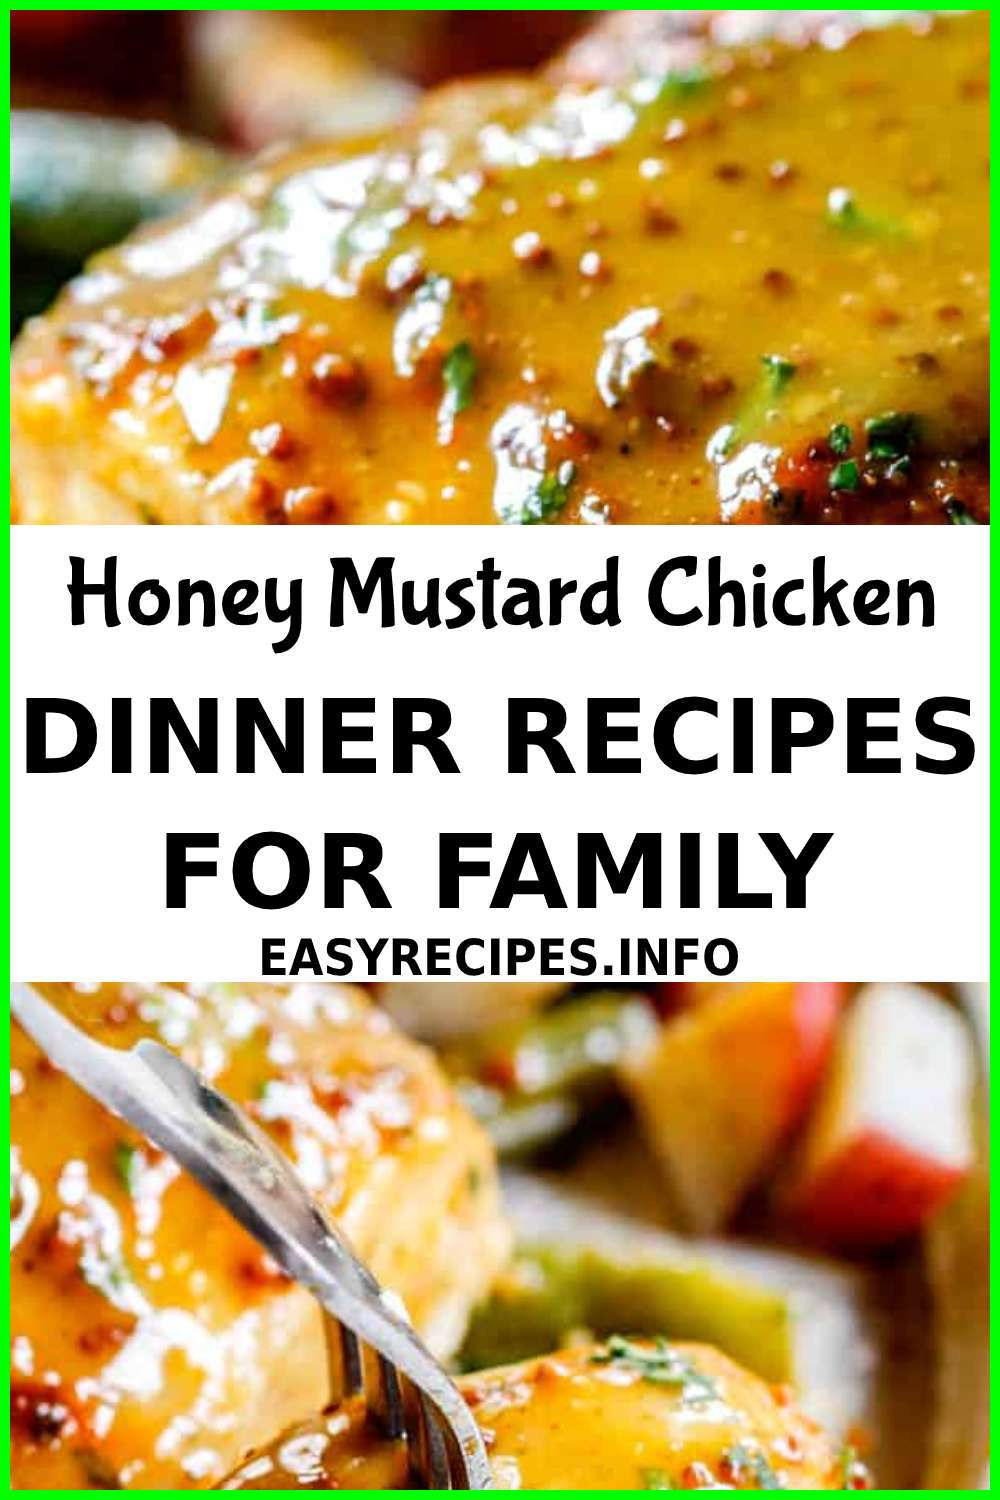 easy dinner recipes for a family, dinner recipes for a family, easy dinner recipes for the family, dinner recipes for family, easy dinner recipes for a family of 6, easy dinner recipes for family healthy, easy healthy dinner recipes for the family, dinner recipes for family, easy dinner recipes for family, healthy dinner recipes for family, quick and easy dinner recipes for family, dinner recipes for family main dishes, keto dinner recipes for family, chicken dinner recipes for family, simple dinner recipes for family, easy healthy dinner recipes for family, dinner recipes for family kids, dinner recipes for family crockpot, dinner recipes for family main dishes weekly menu, vegetarian dinner recipes for family, dinner recipes for family beef, easy keto dinner recipes for family, dinner recipes for family main dishes picky eaters, cheap dinner recipes for family, quick dinner recipes for family, easy summer dinner recipes for family, easy chicken dinner recipes for family, dinner recipes for family busy mom, clean dinner recipes for family, dinner recipes for family main dishes ground beef, ww dinner recipes for family, healthy keto dinner recipes for family, gluten free dinner recipes for family, dinner recipes for family main dishes comfort foods, dinner recipes for family picky eaters, dinner recipes for family pasta